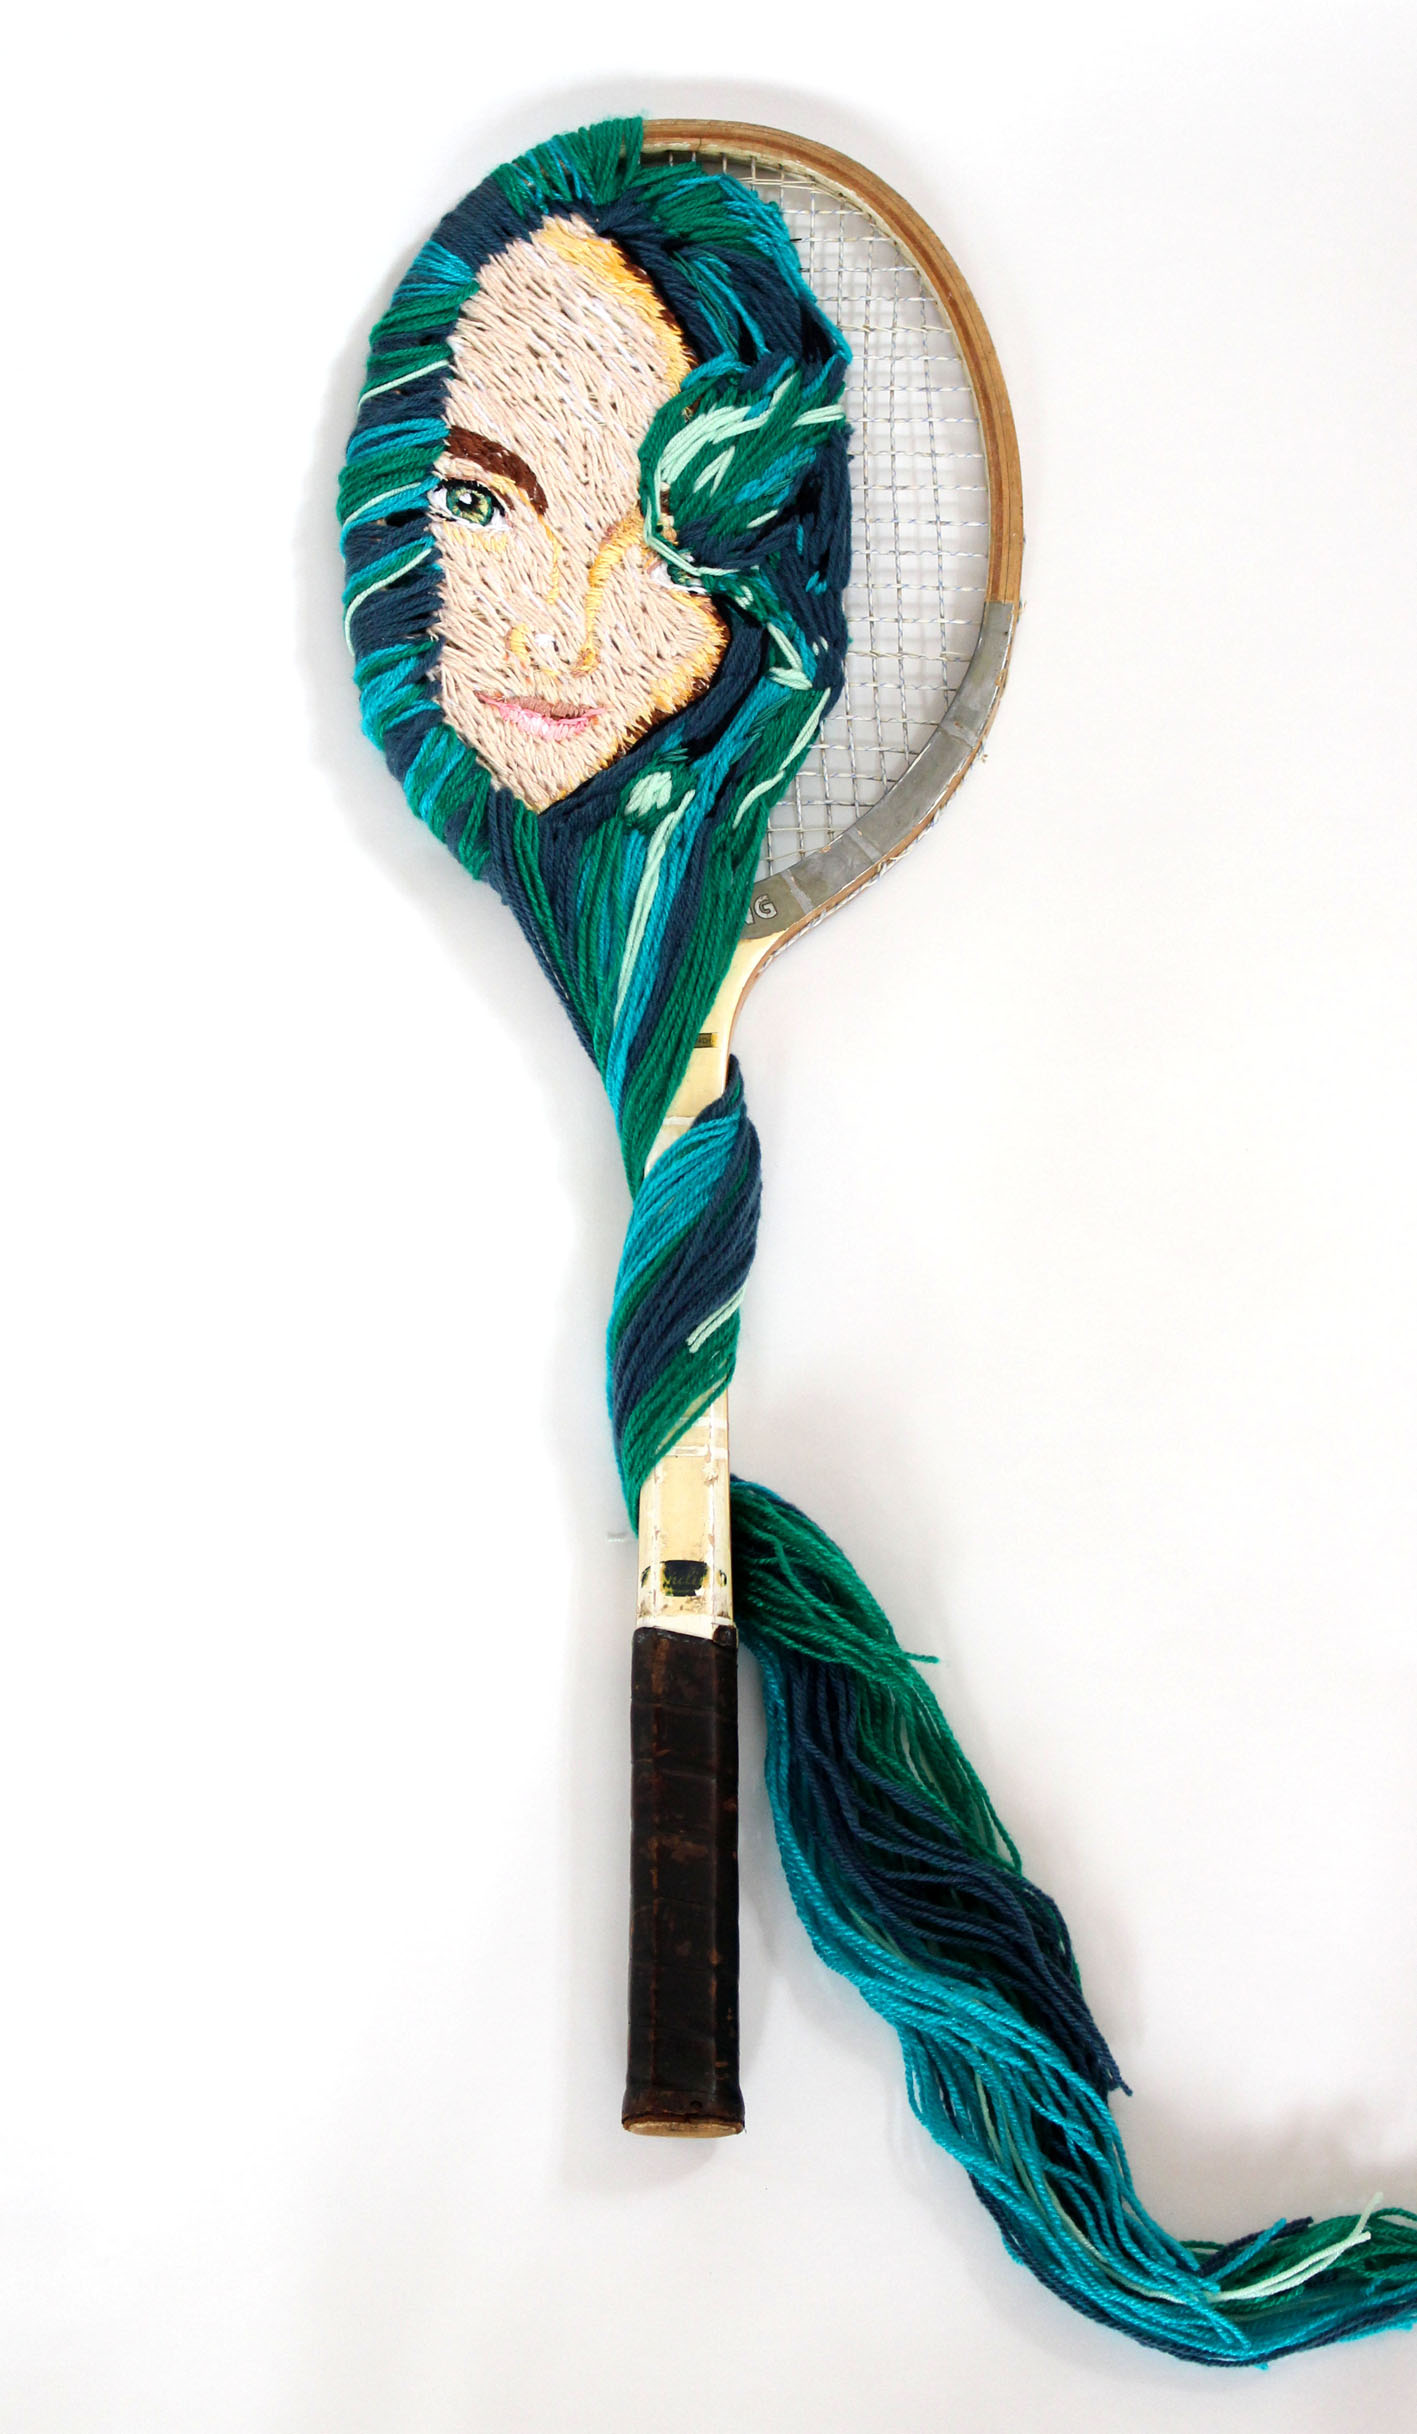 Tennis Racket, wool woven portrait of gi